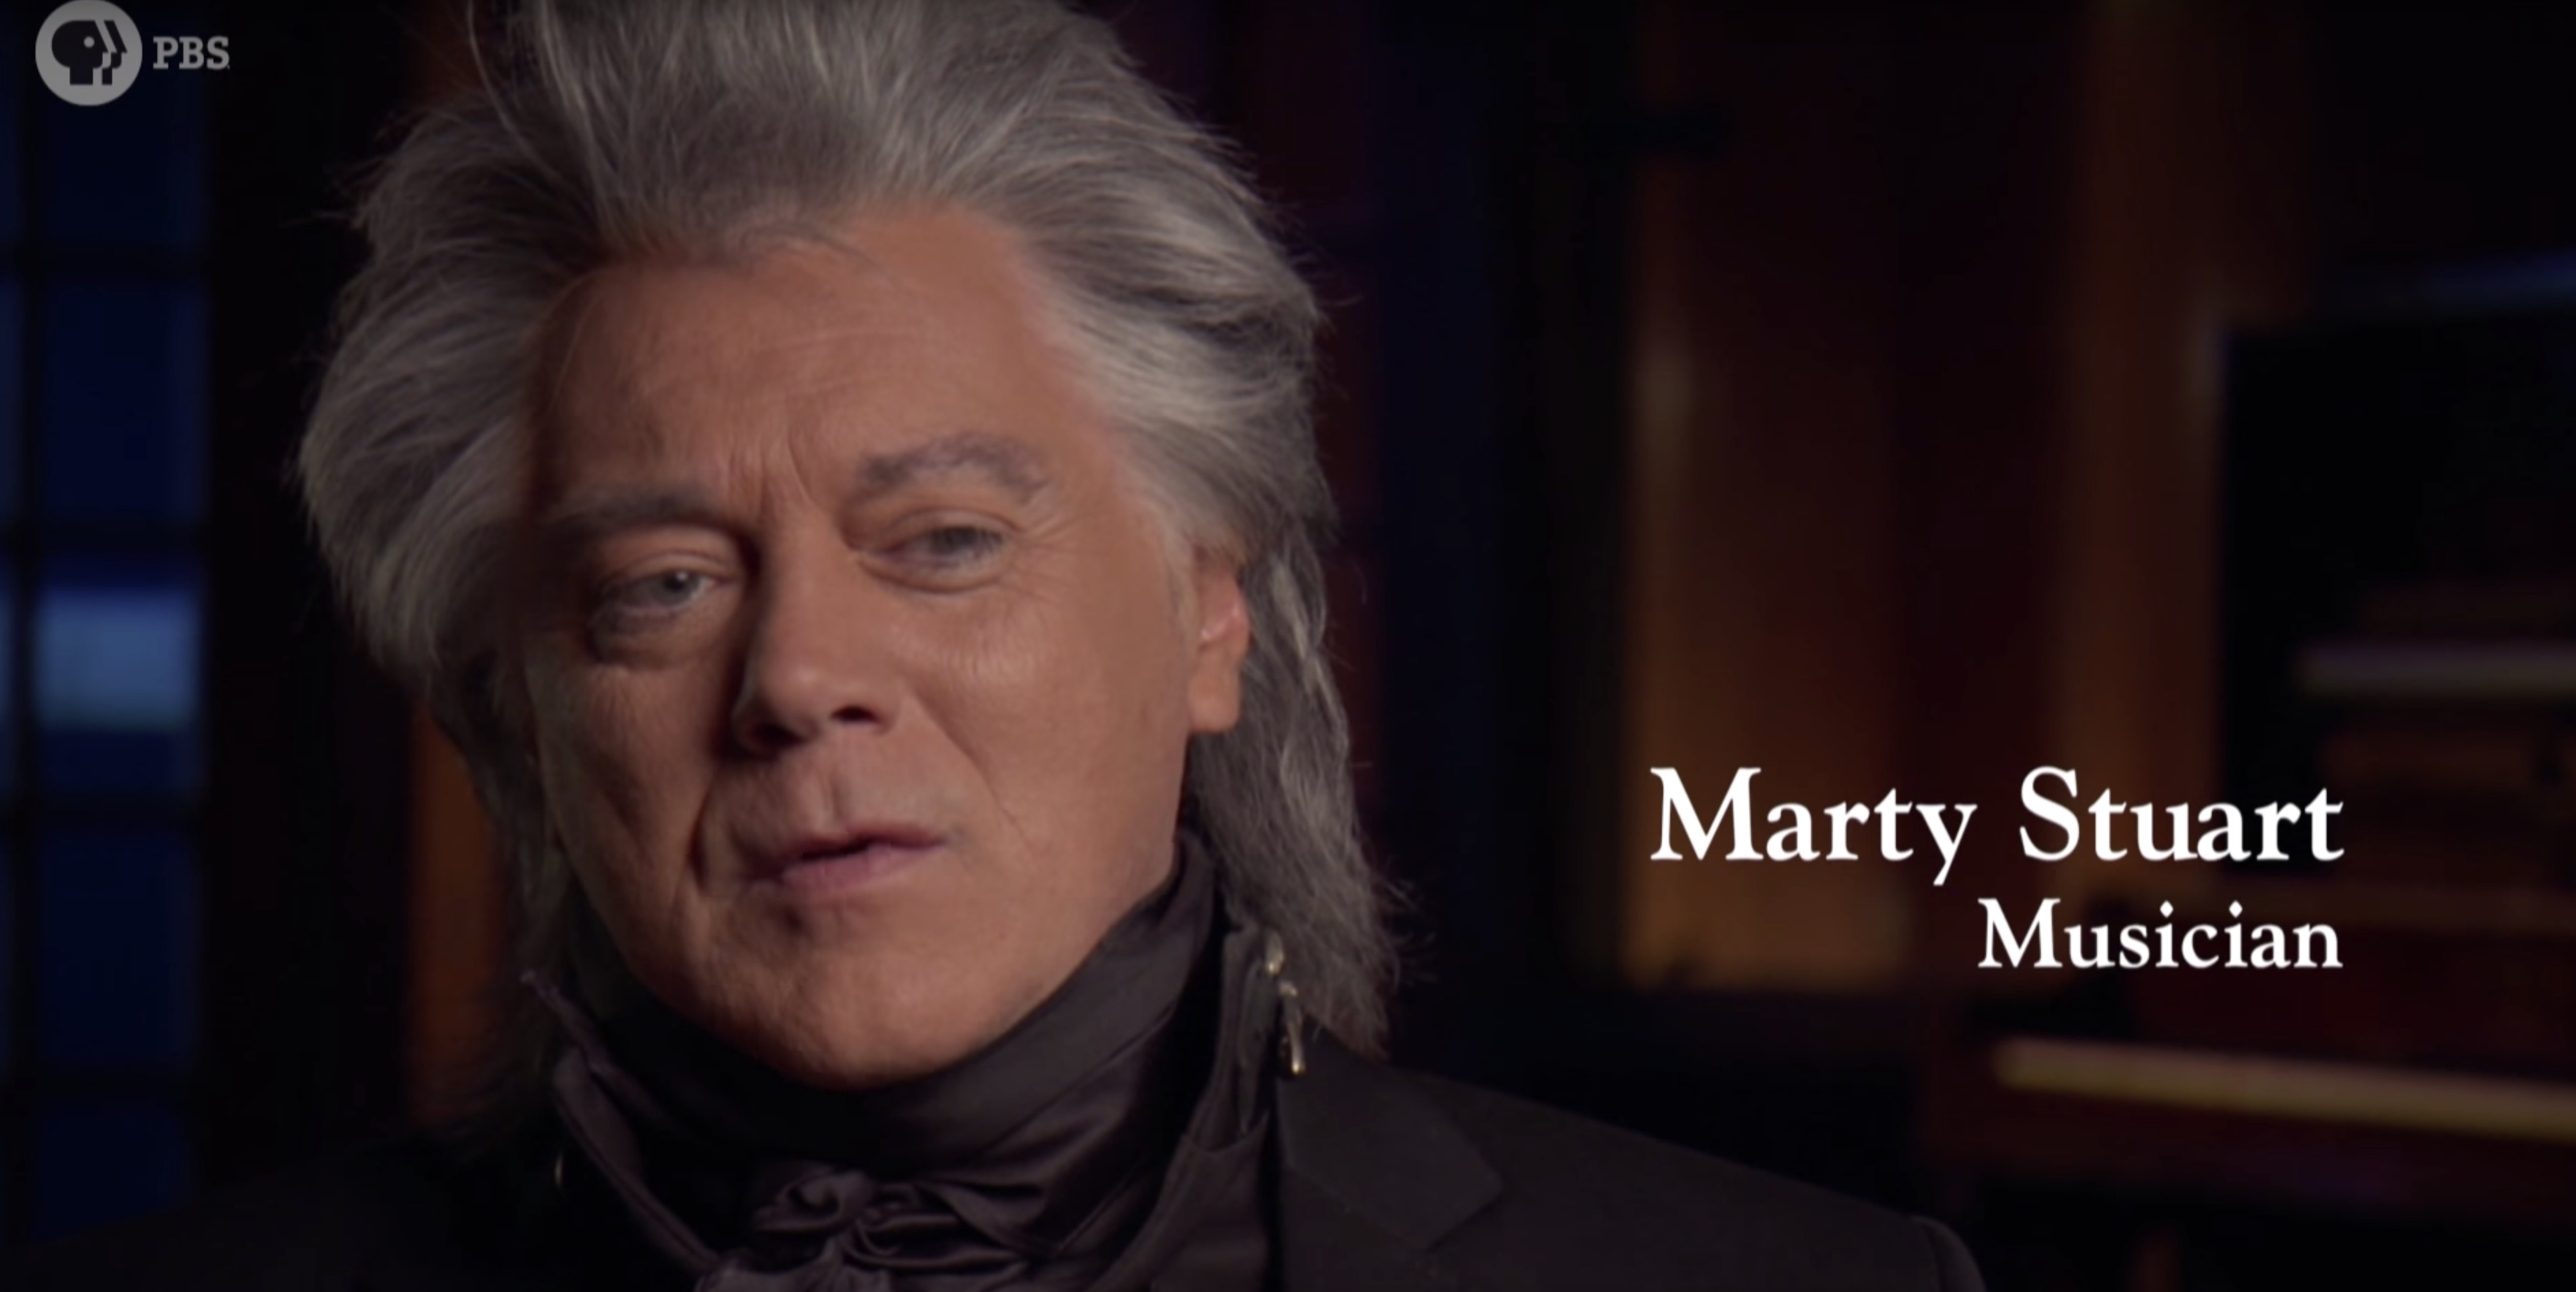 Marty Stuart on the Mystery of Songwriting